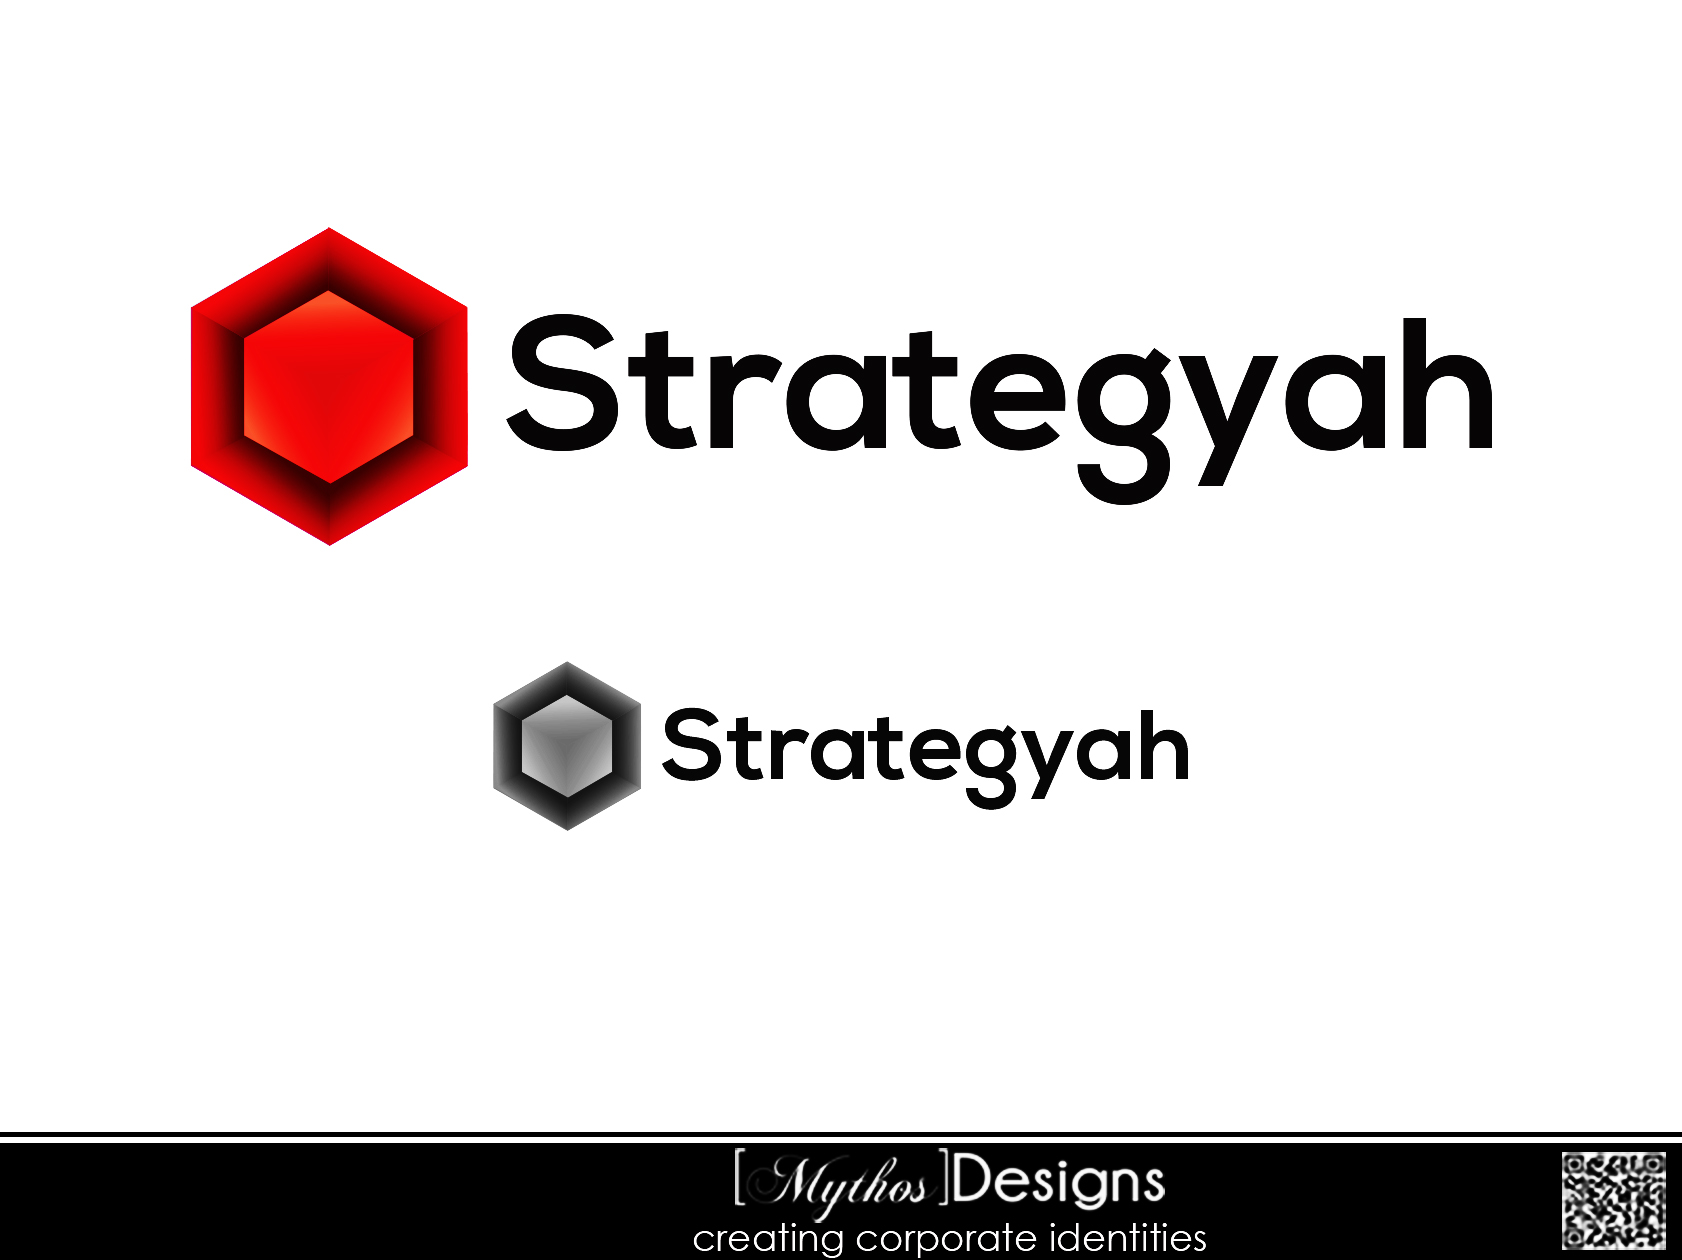 Logo Design by Mythos Designs - Entry No. 103 in the Logo Design Contest Creative Logo Design for Strategyah.